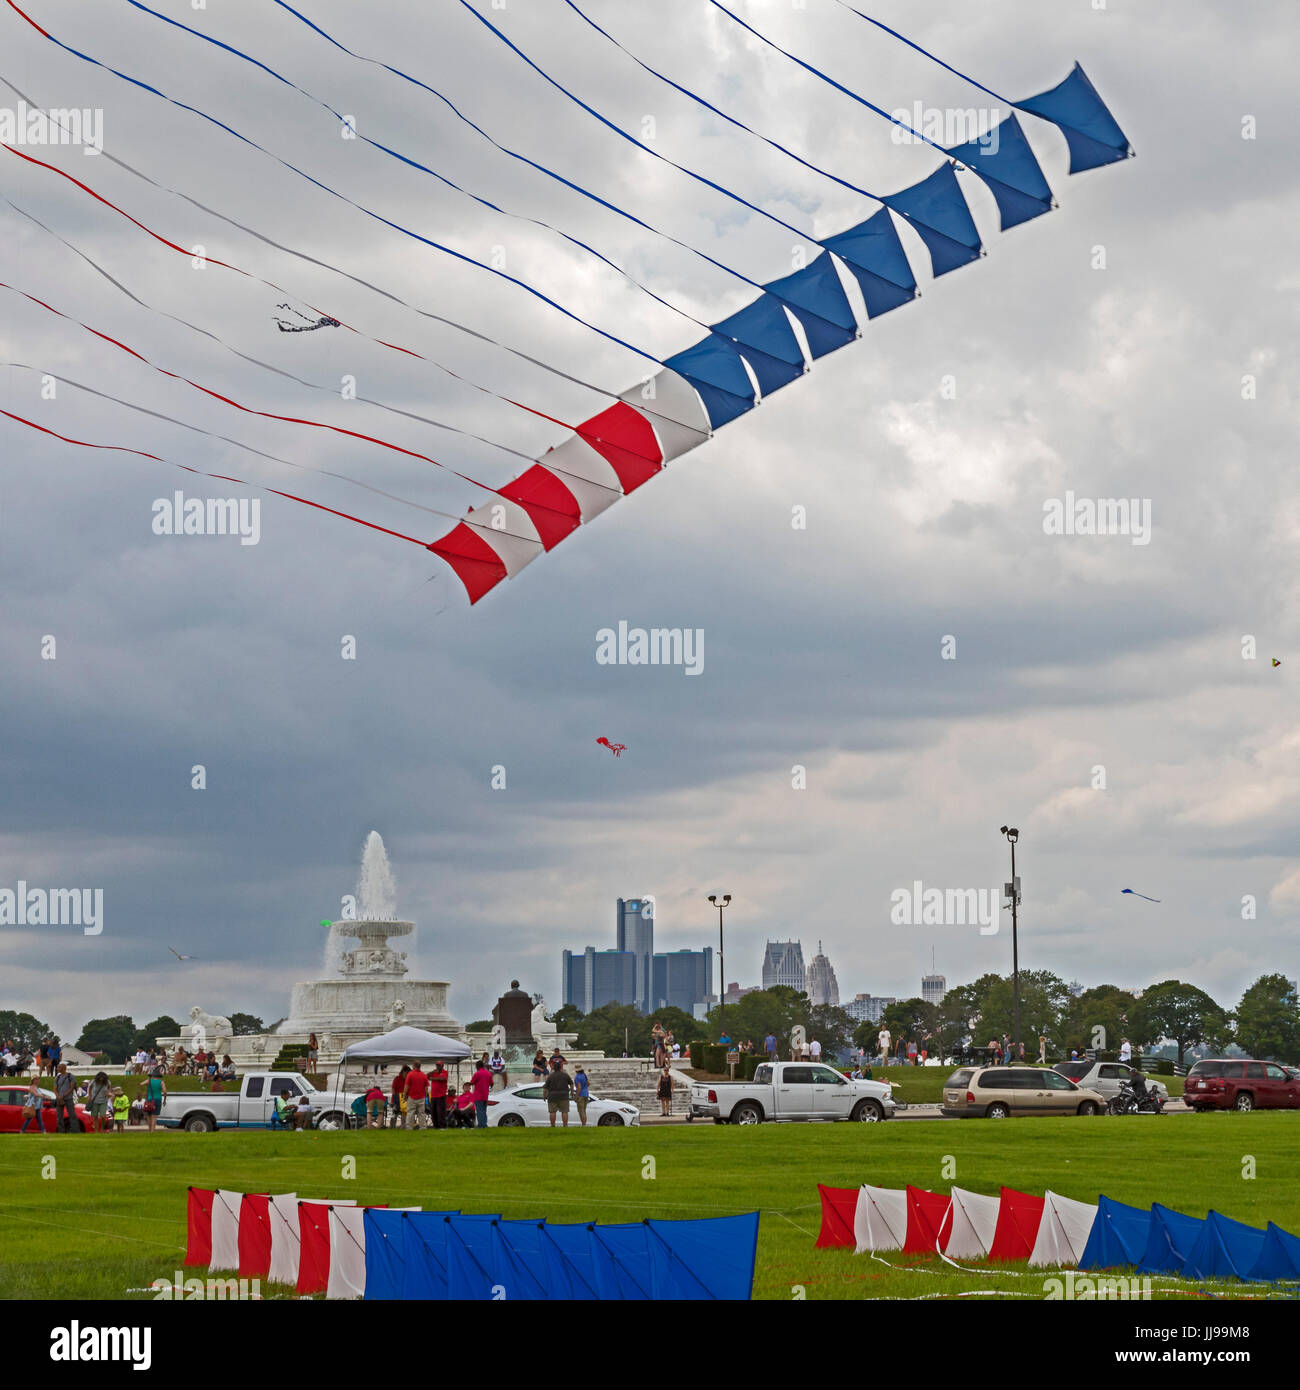 Detroit, Michigan - The Windjammers Kite Team performs at the Detroit Kite Festival, held on Belle Isle. The team - Stock Image